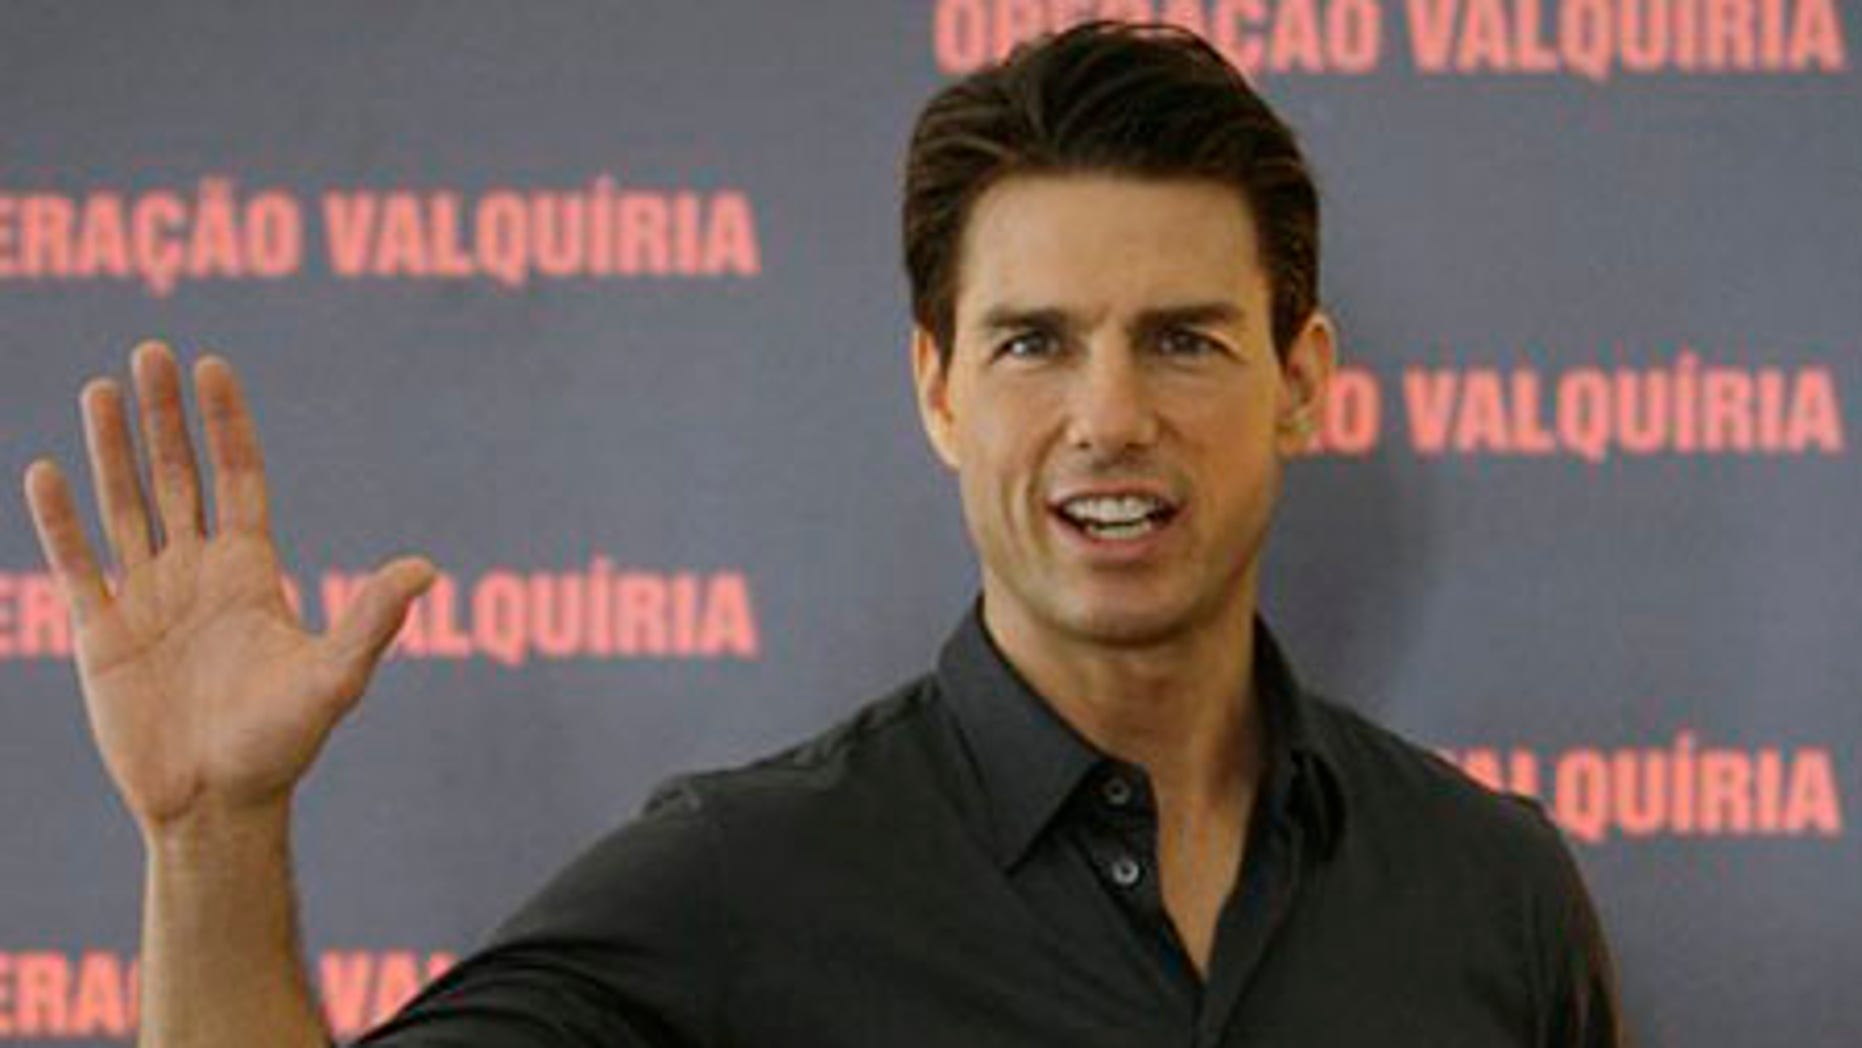 """** CORRECTS MONTH TO FEB. ** U.S. actor Tom Cruise waves during a photo call to promote his movie """"Valkyrie"""" in Rio de Janeiro, Tuesday, Feb. 3, 2009.  (AP Photo/Ricardo Moraes)"""